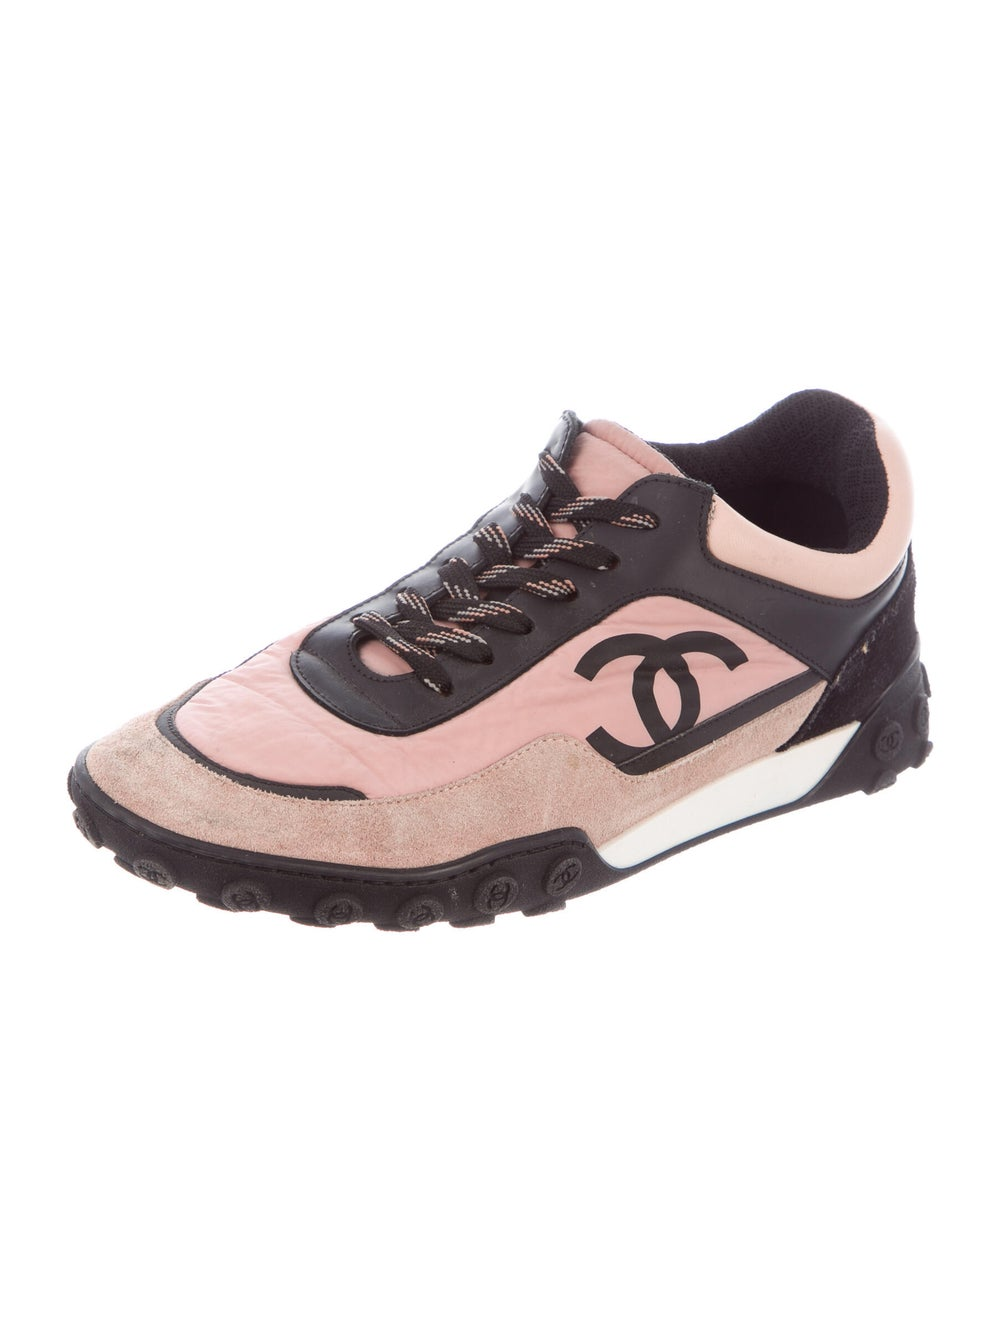 Chanel Suede Colorblock Pattern Sneakers Pink - image 2